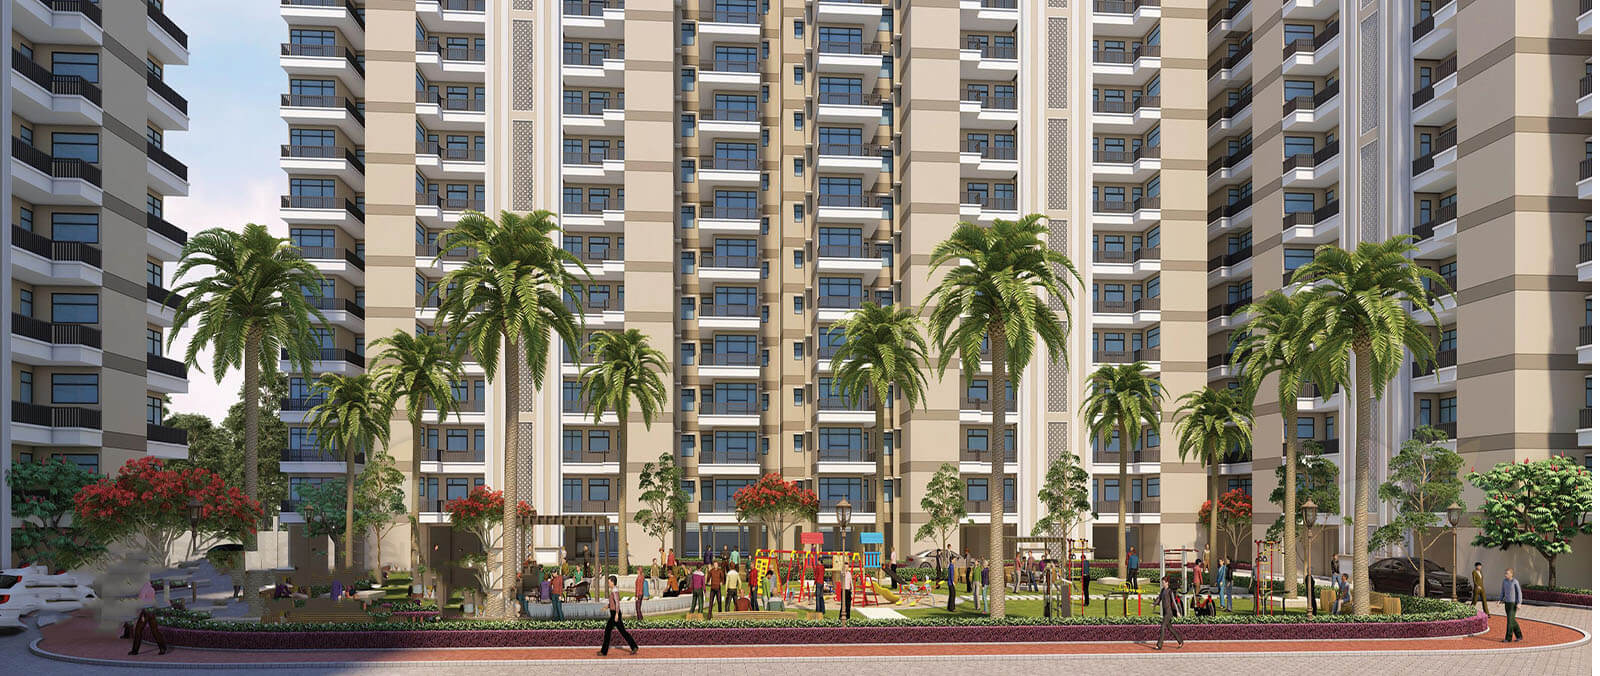 Flats for sale in Faridabad